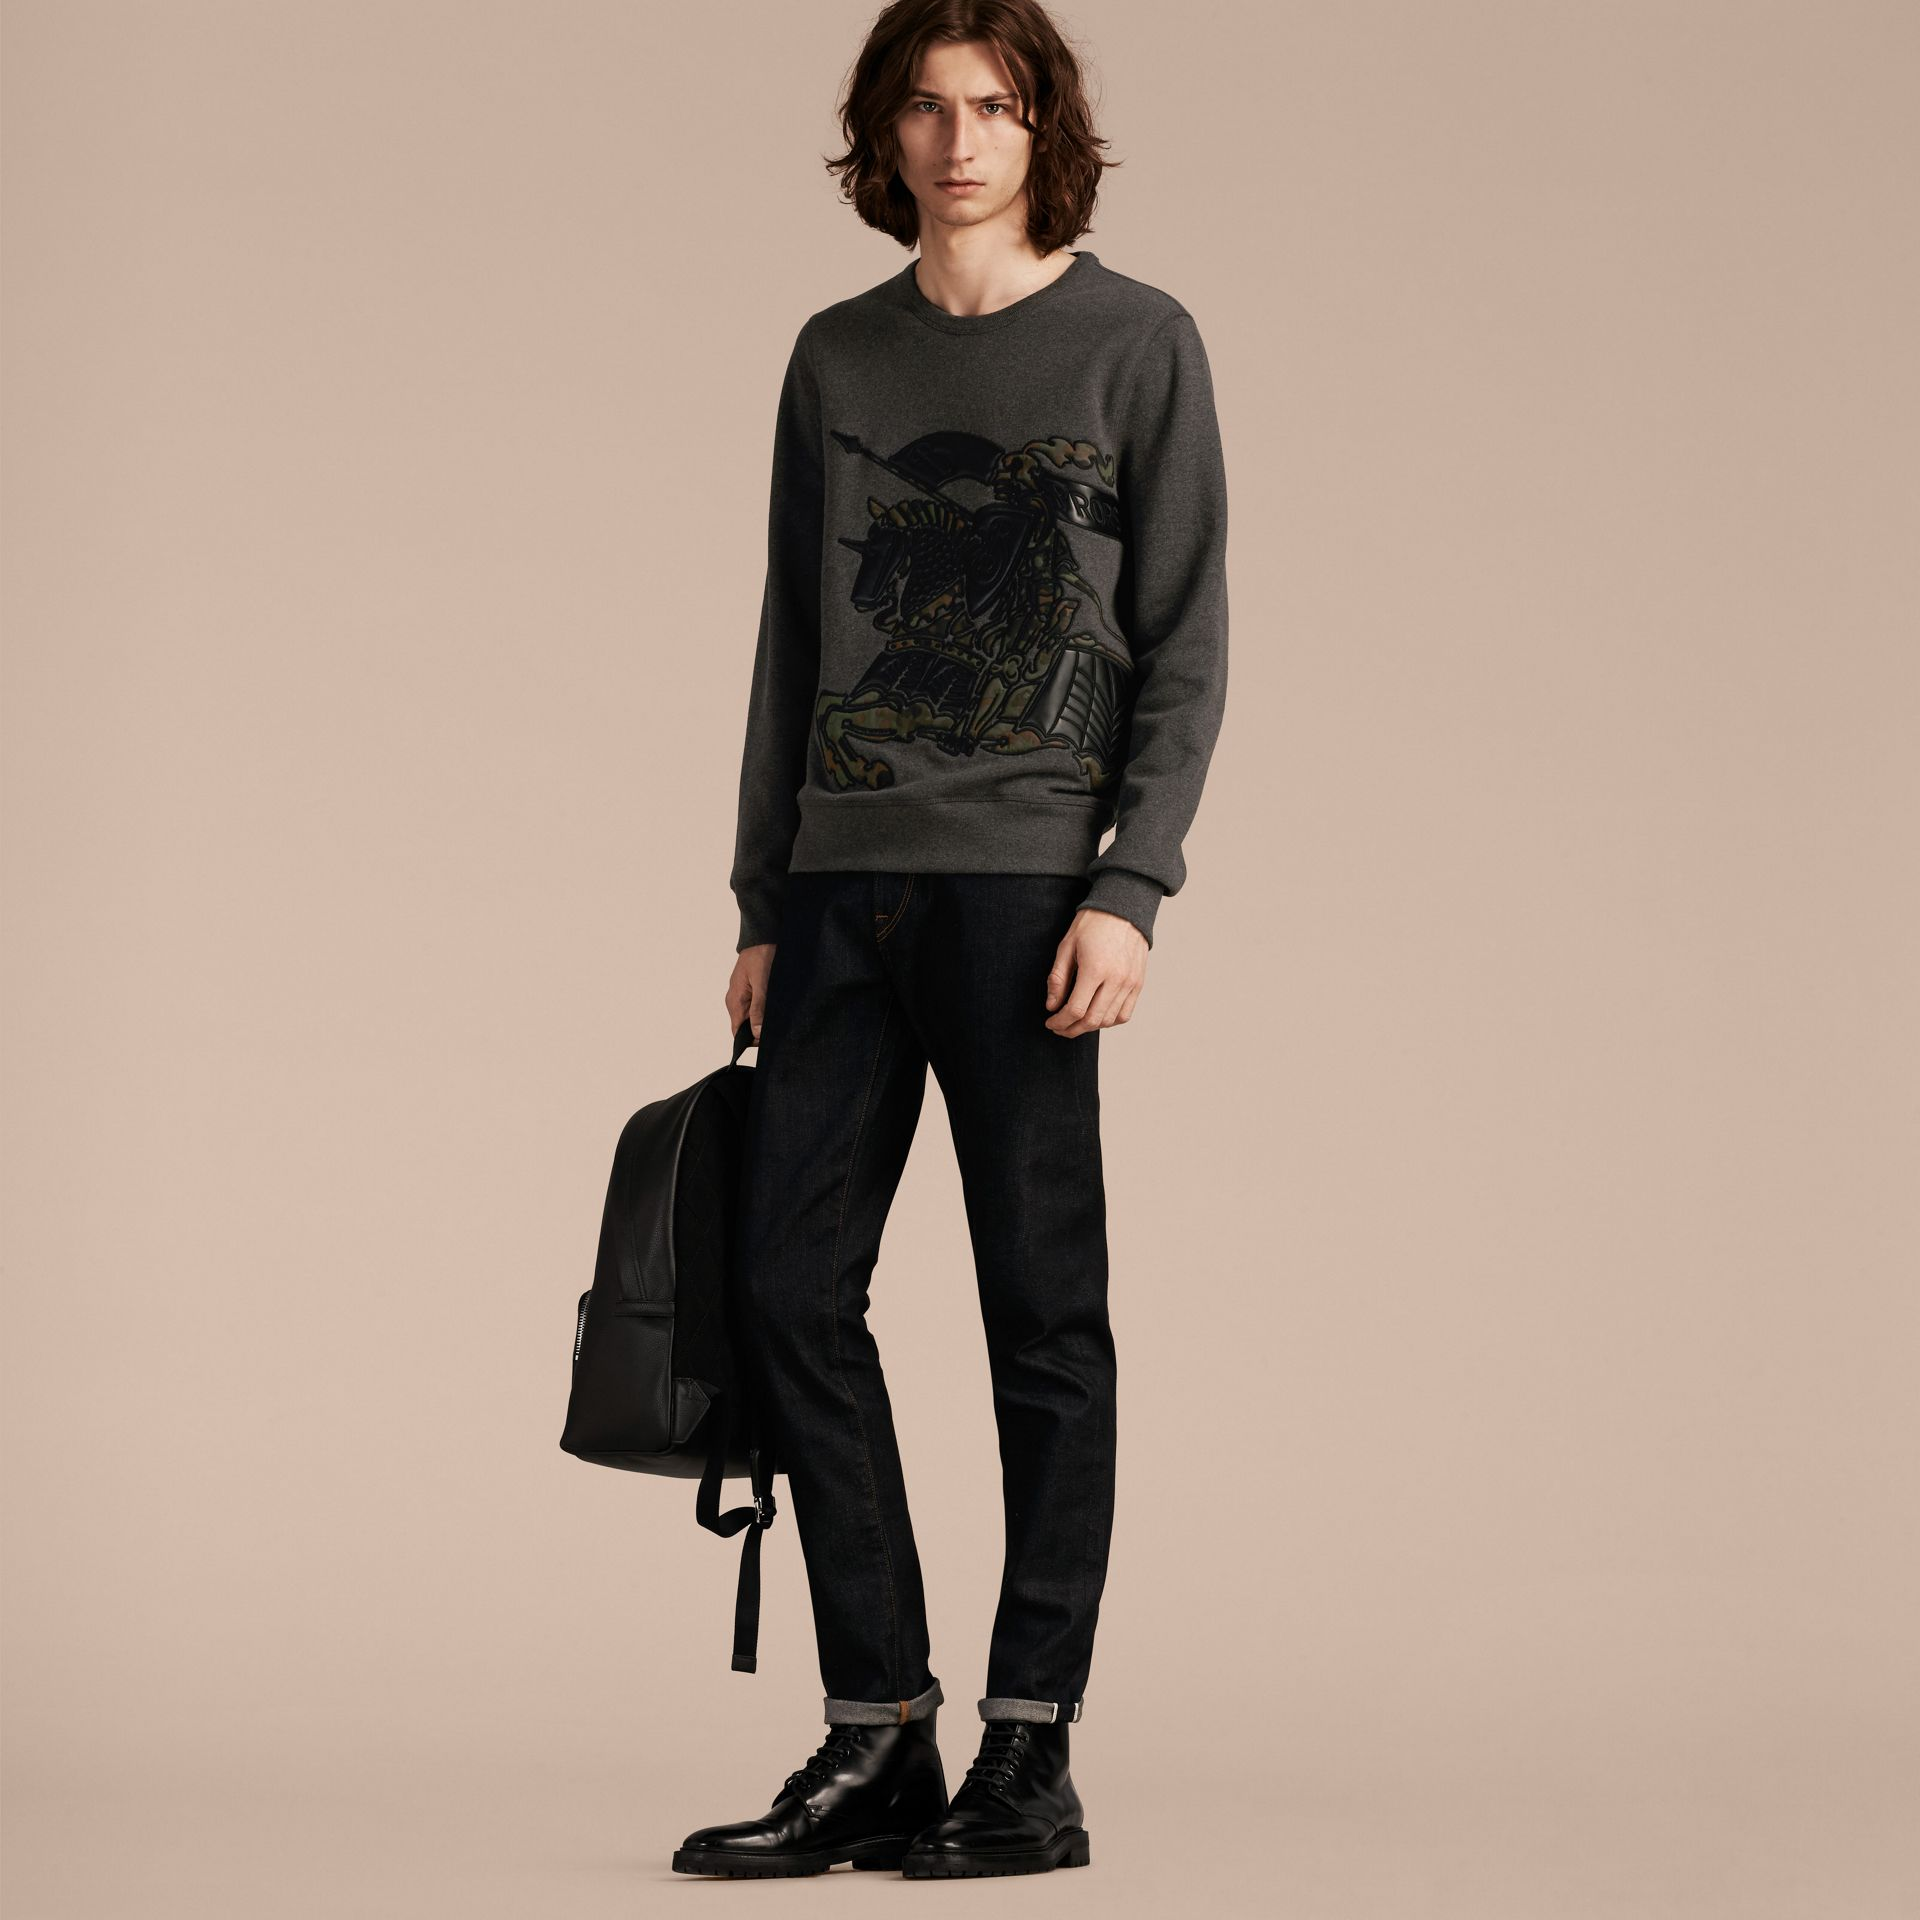 Charcoal melange Equestrian Knight Device Cotton and Lambskin Sweatshirt - gallery image 6